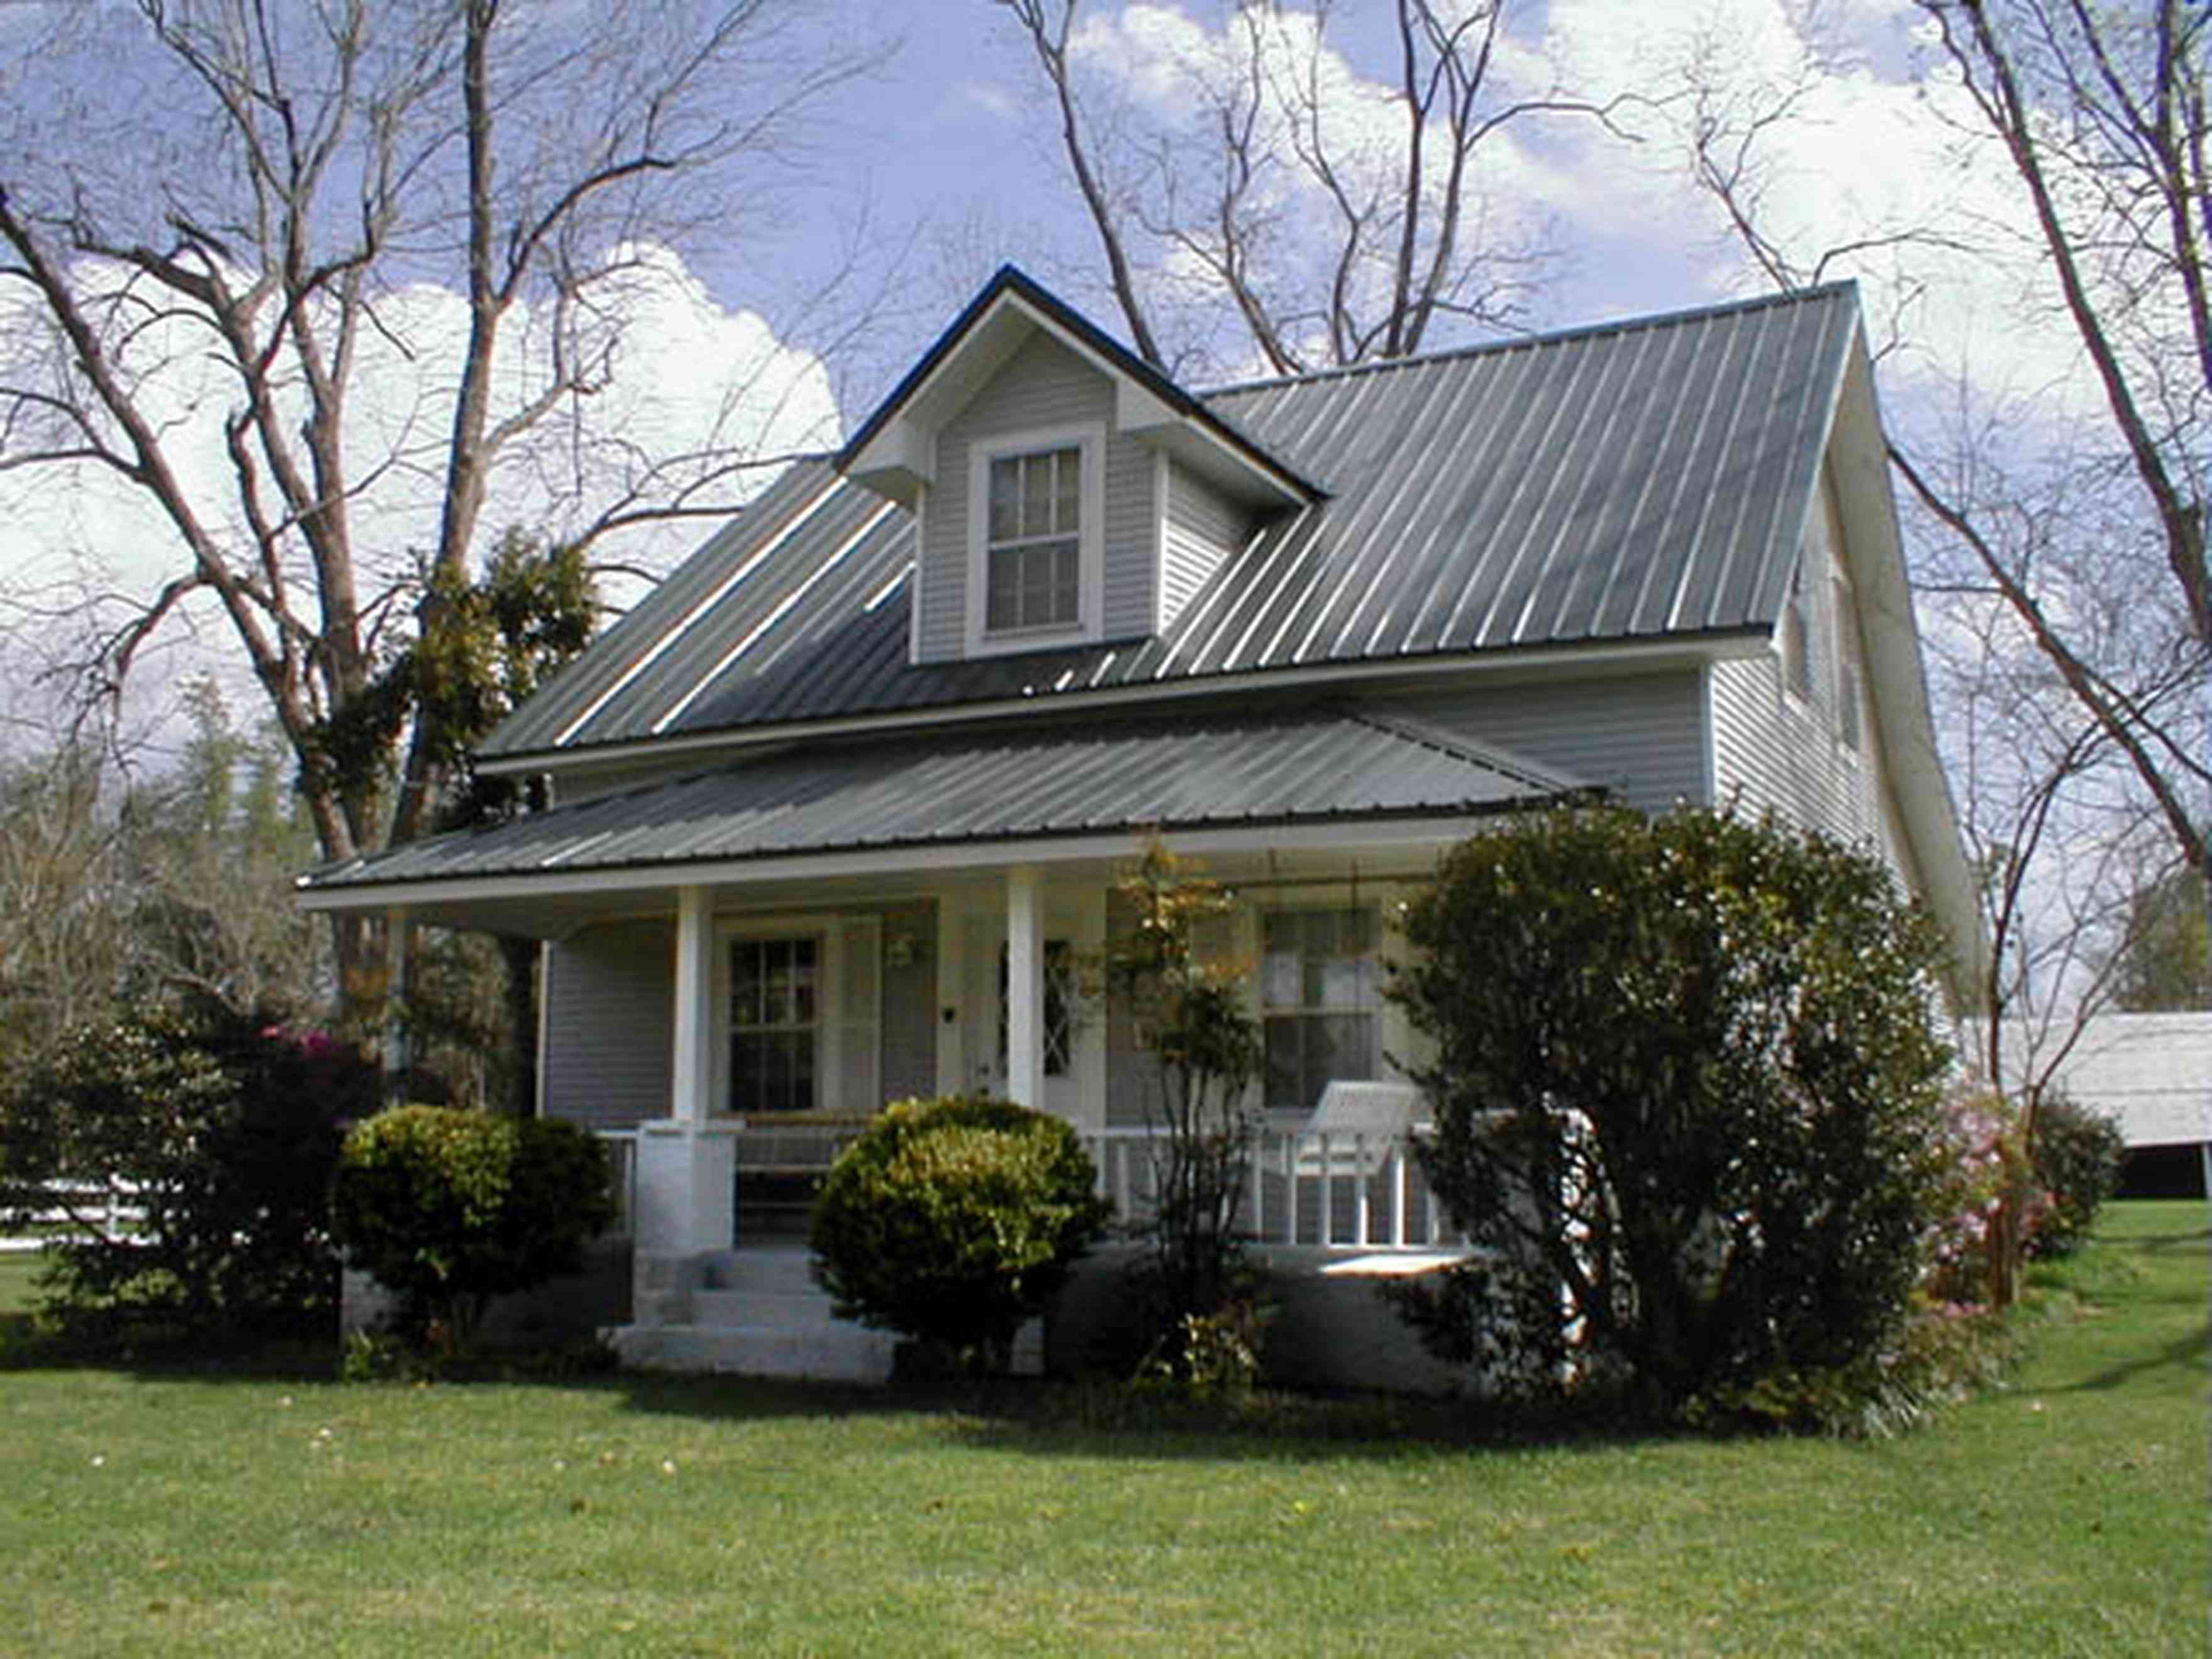 Molino:-Green-Farm_00.jpg:  1930's farm house, front porch, tin roof, pecan trees, farm, pasture, barn